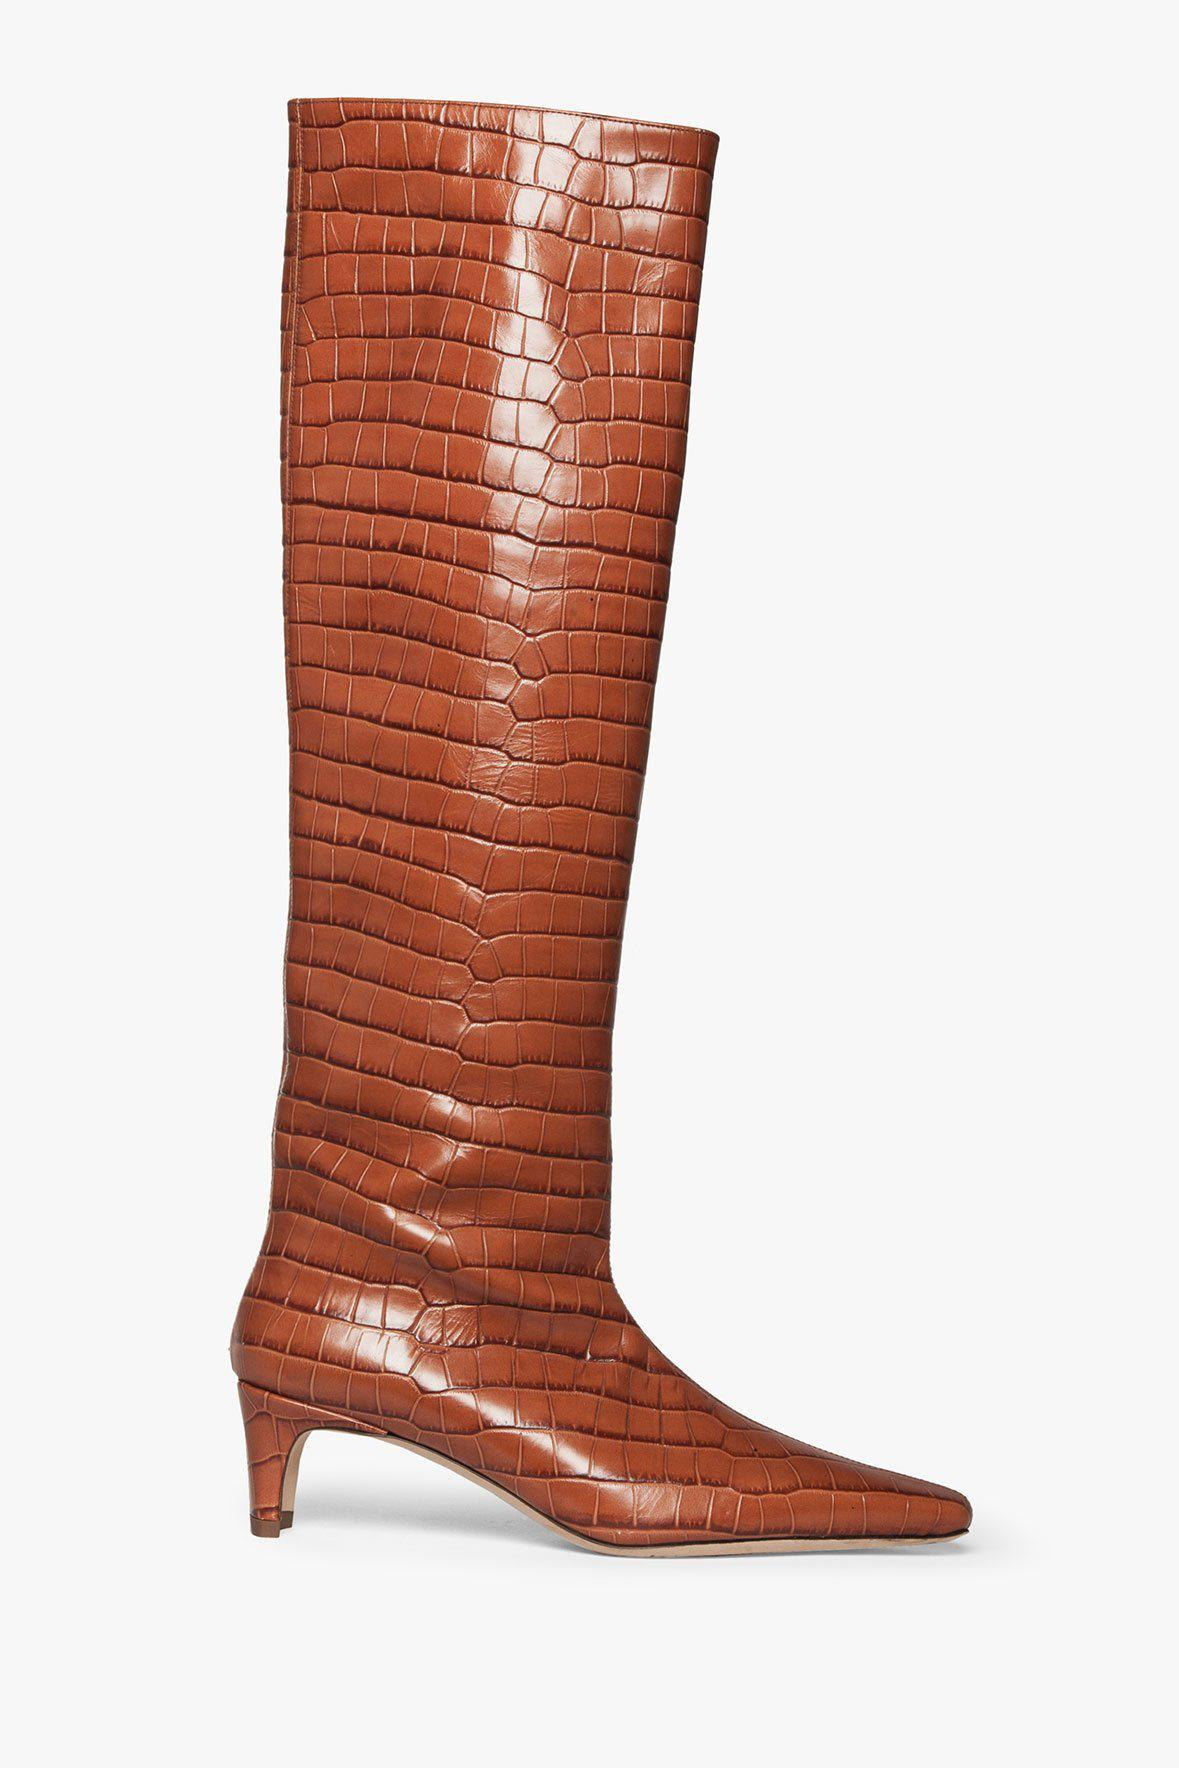 WALLY BOOT | SADDLE CROC EMBOSSED